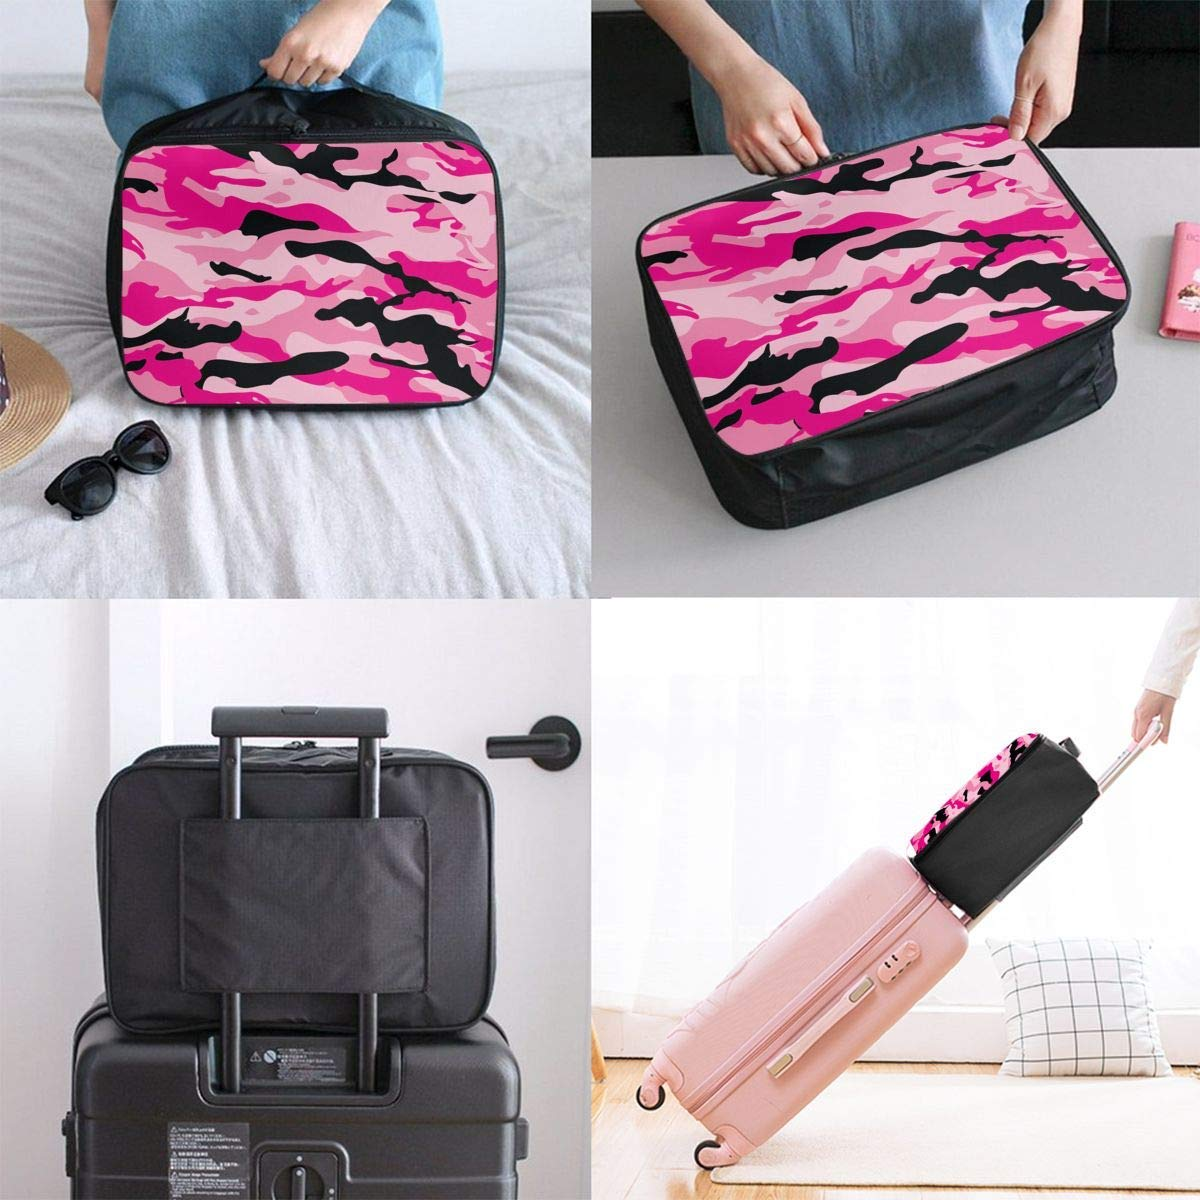 Military Army Camo Camouflage Black Pink Travel Lightweight Waterproof Foldable Storage Carry Luggage Duffle Tote Bag JTRVW Luggage Bags for Travel